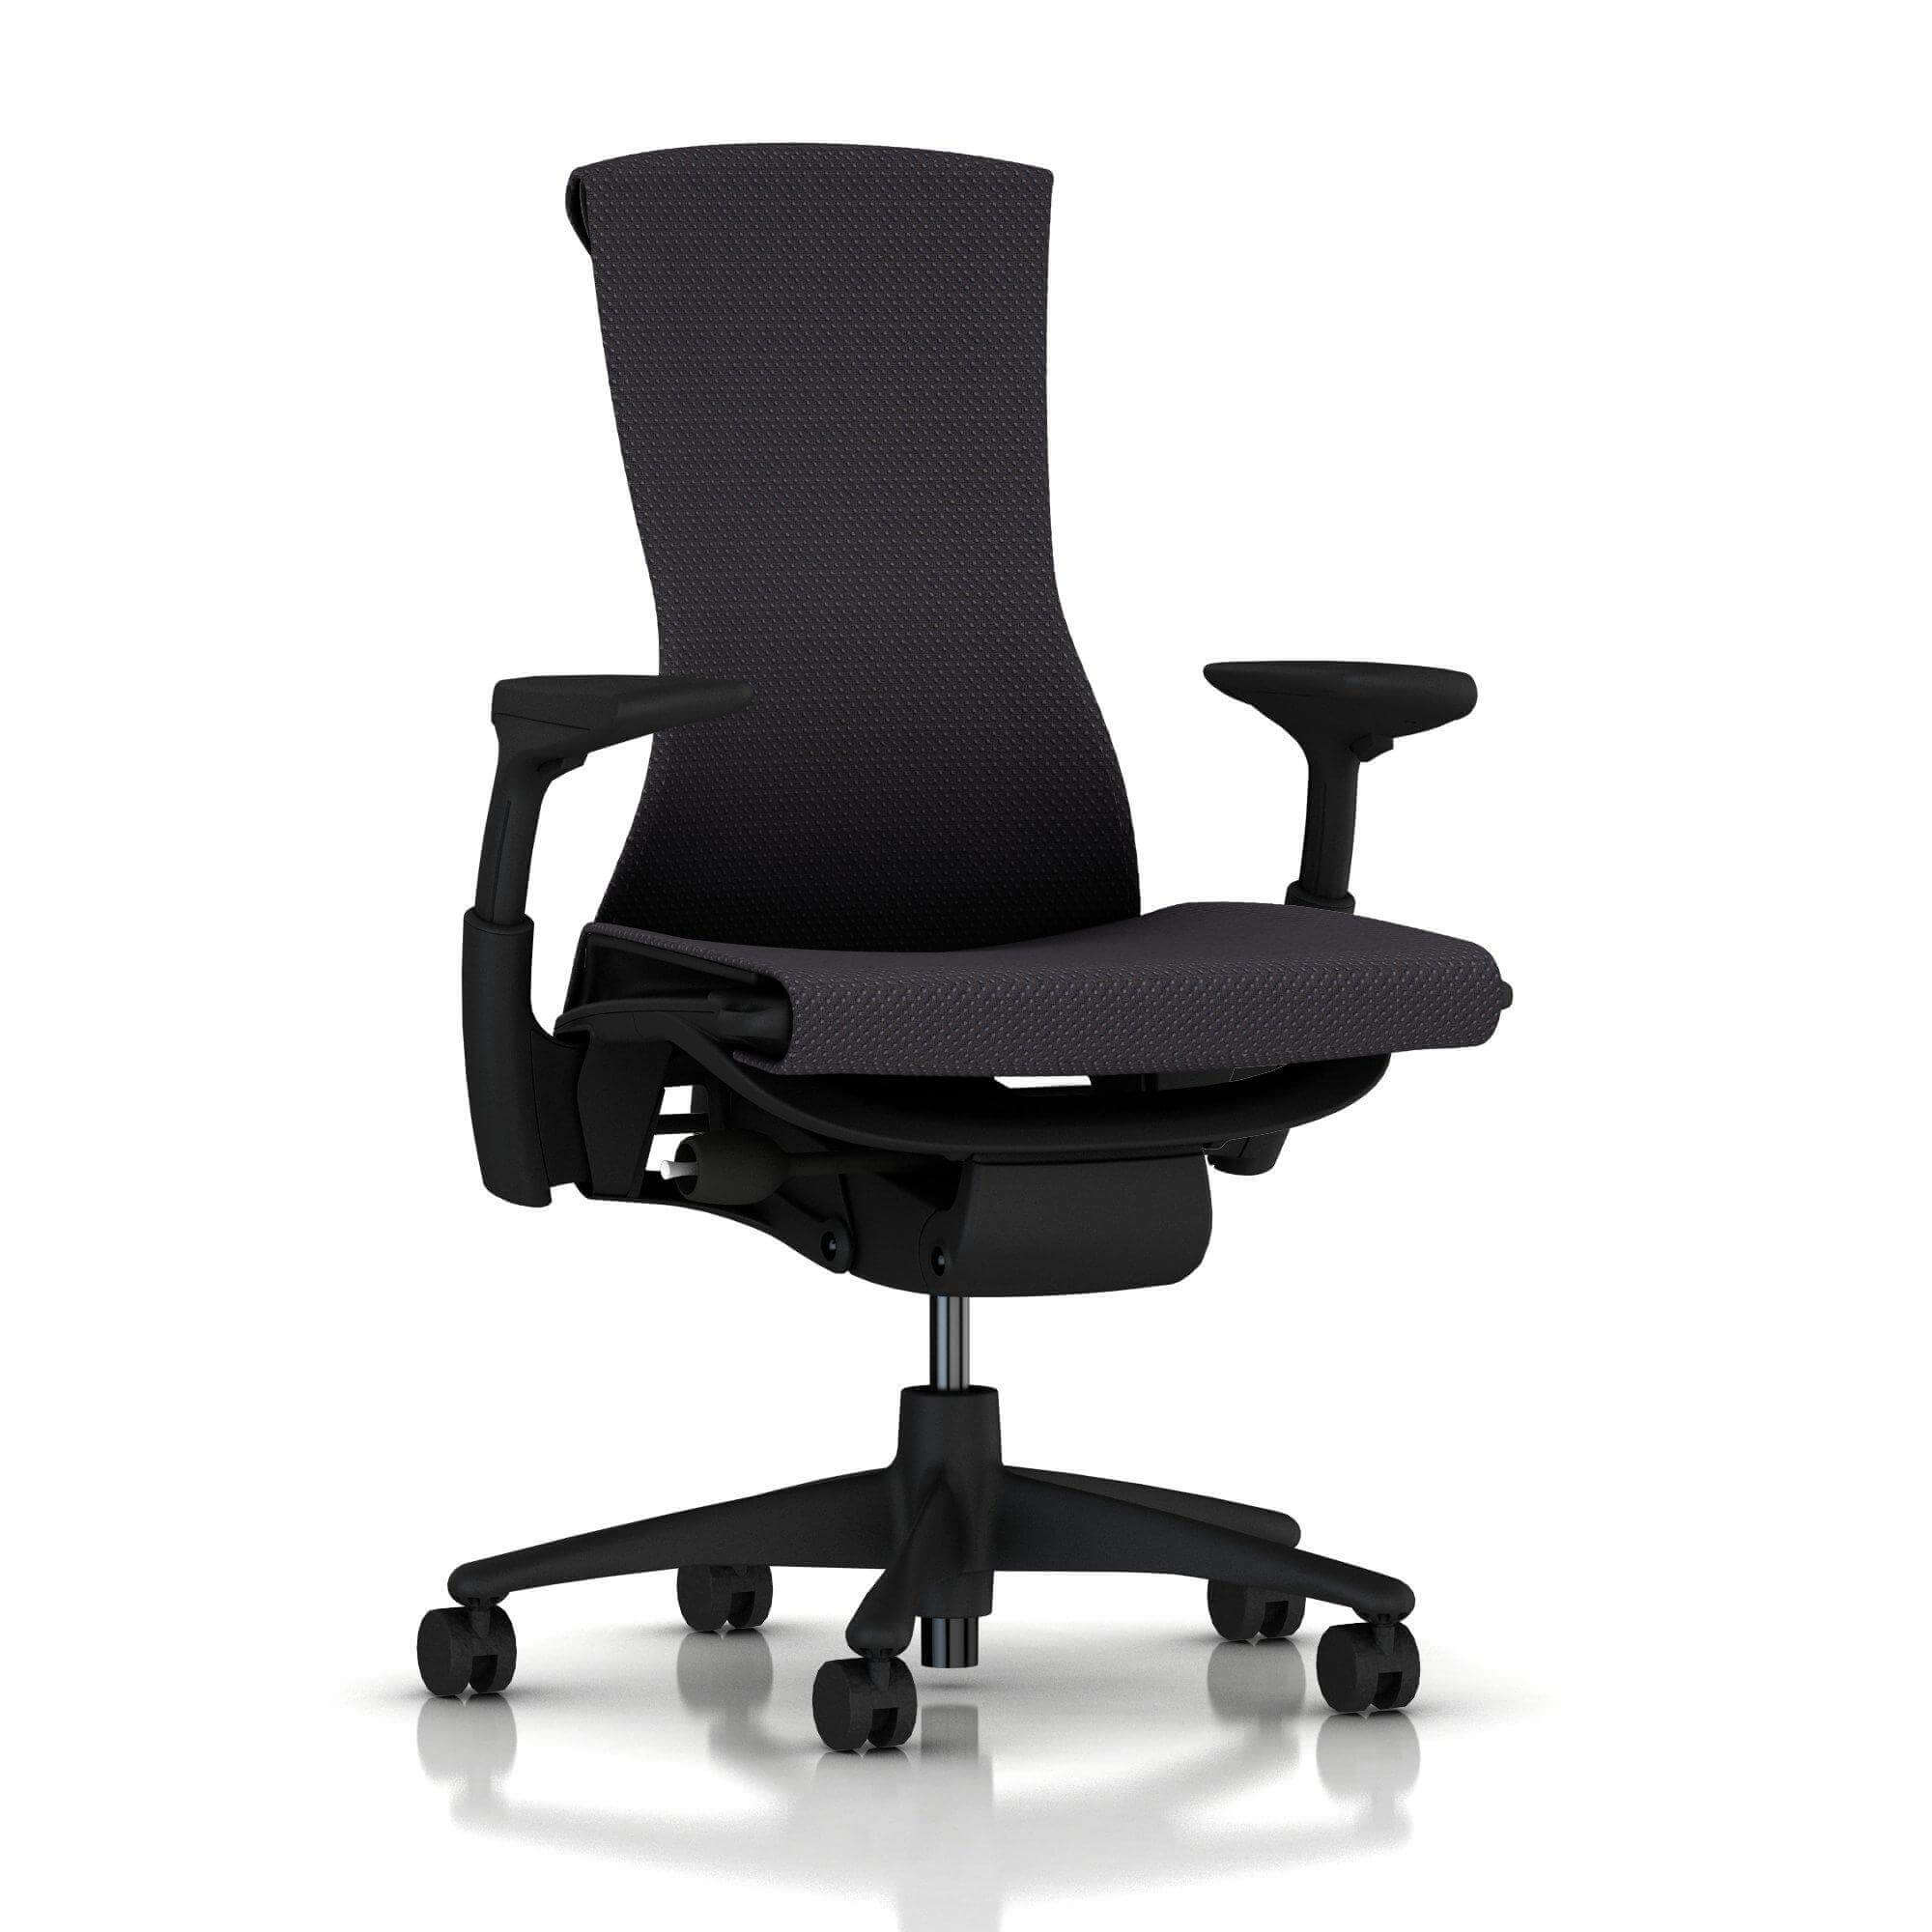 der Embody Chair in der Farbe charcoal